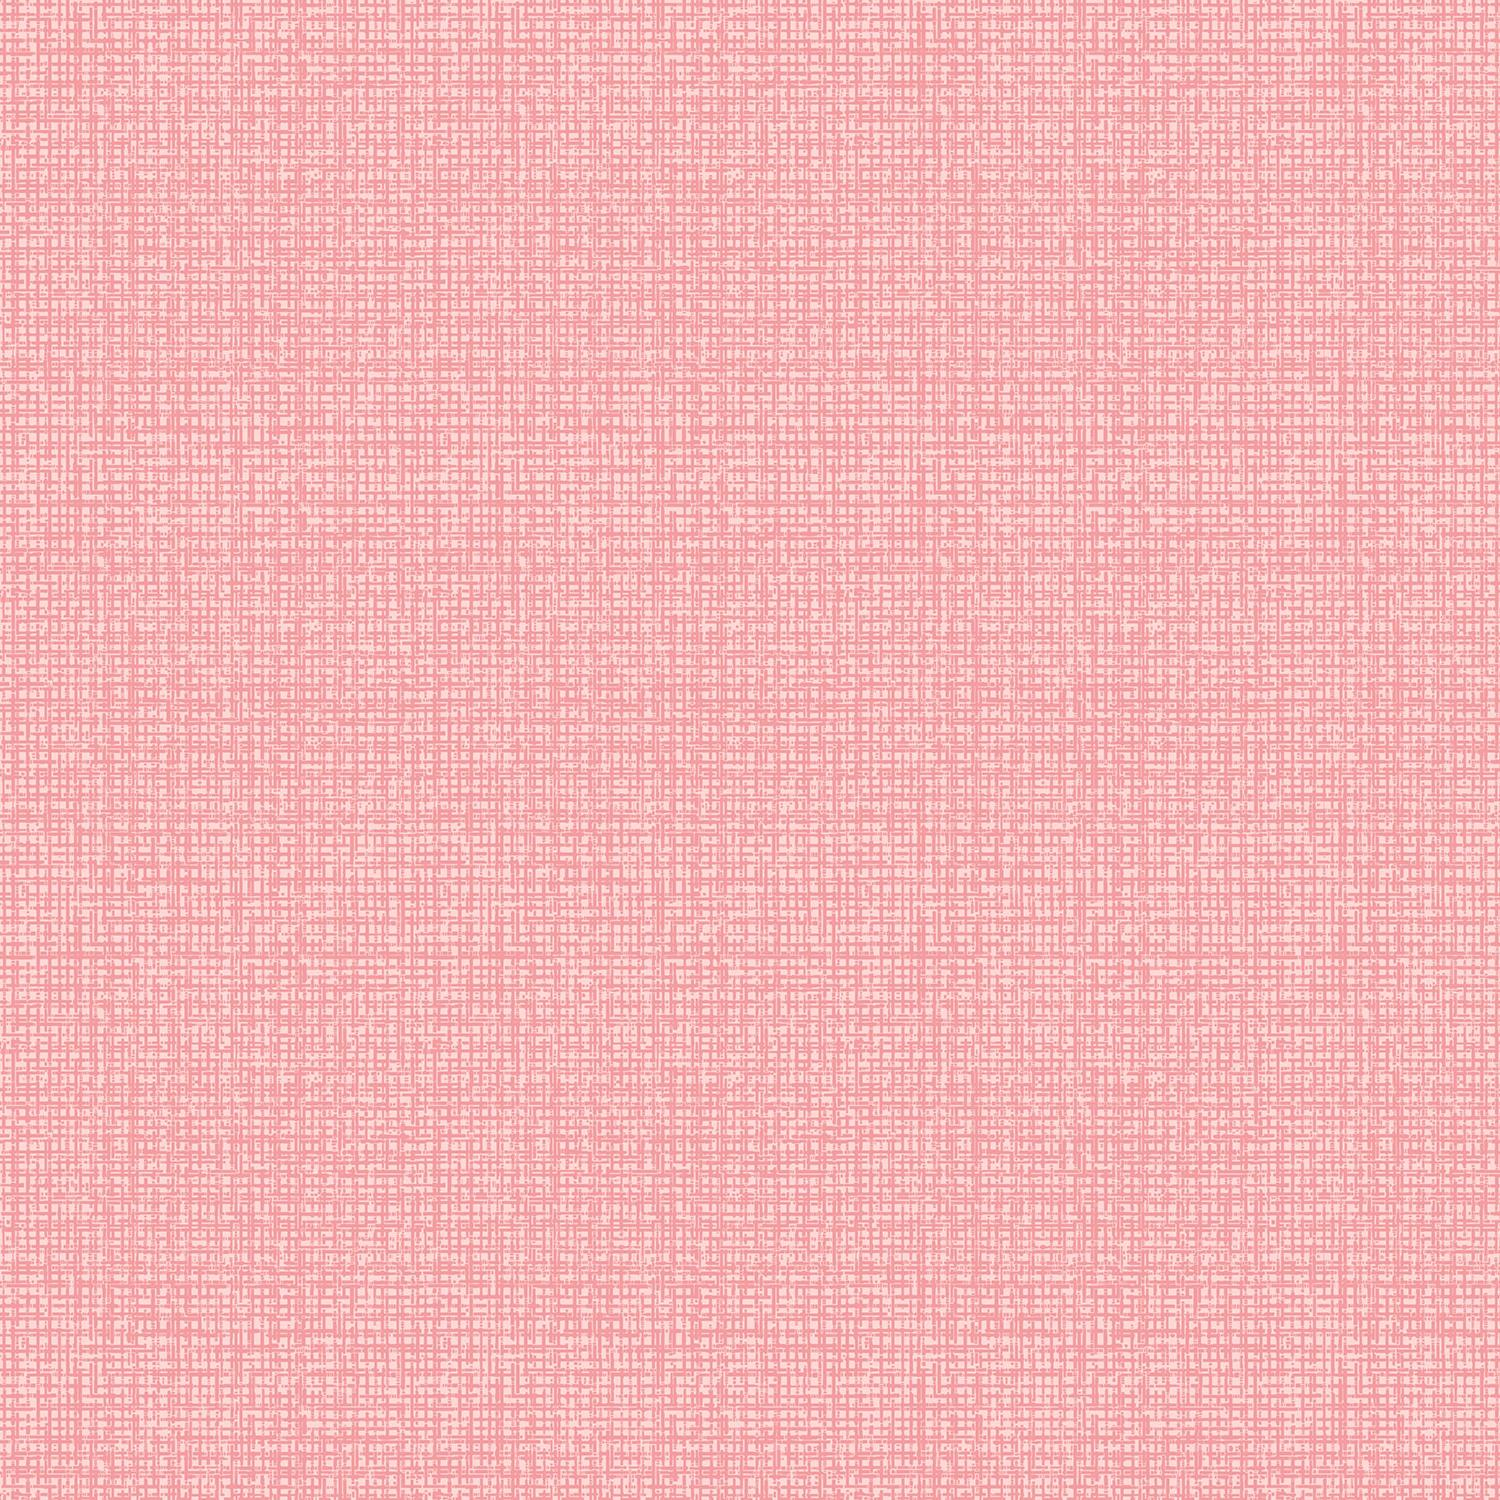 Color Weave #23 Blush